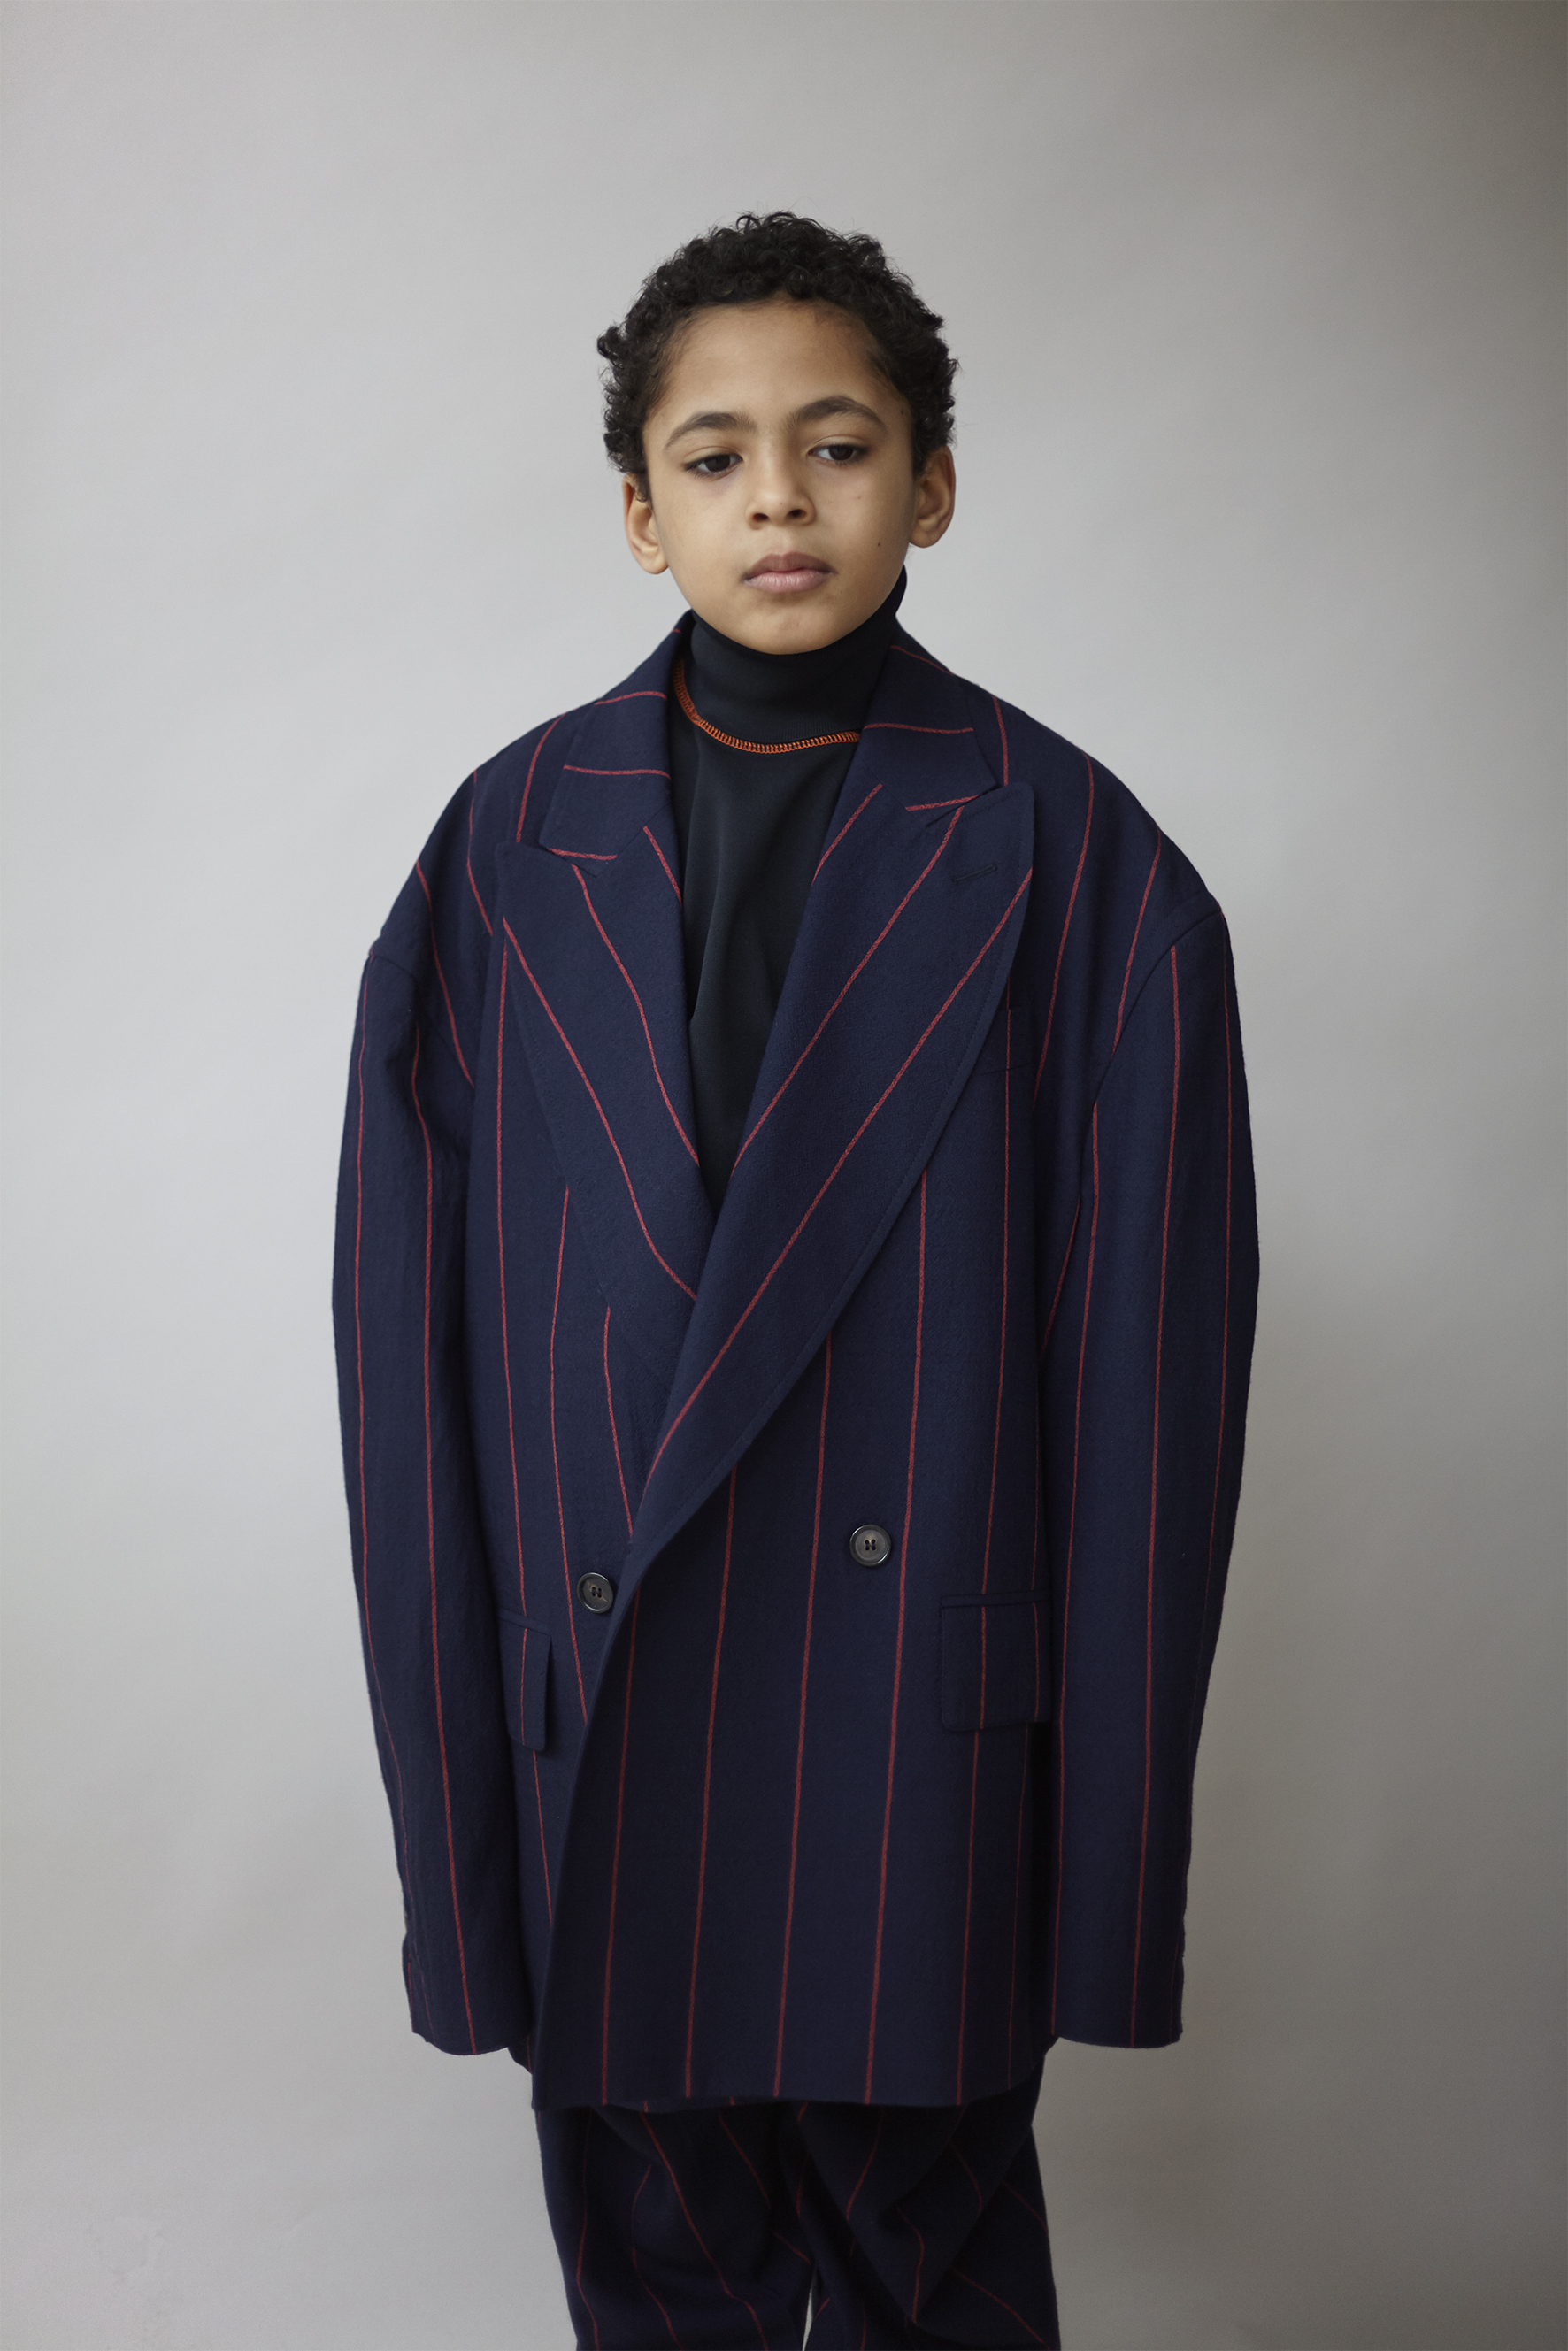 Pinstriped wool double breasted jacket ANDREAS KRONTHALER FOR VIVIENNE WESTWOOD,black technical jersey turtleneck PRADA.